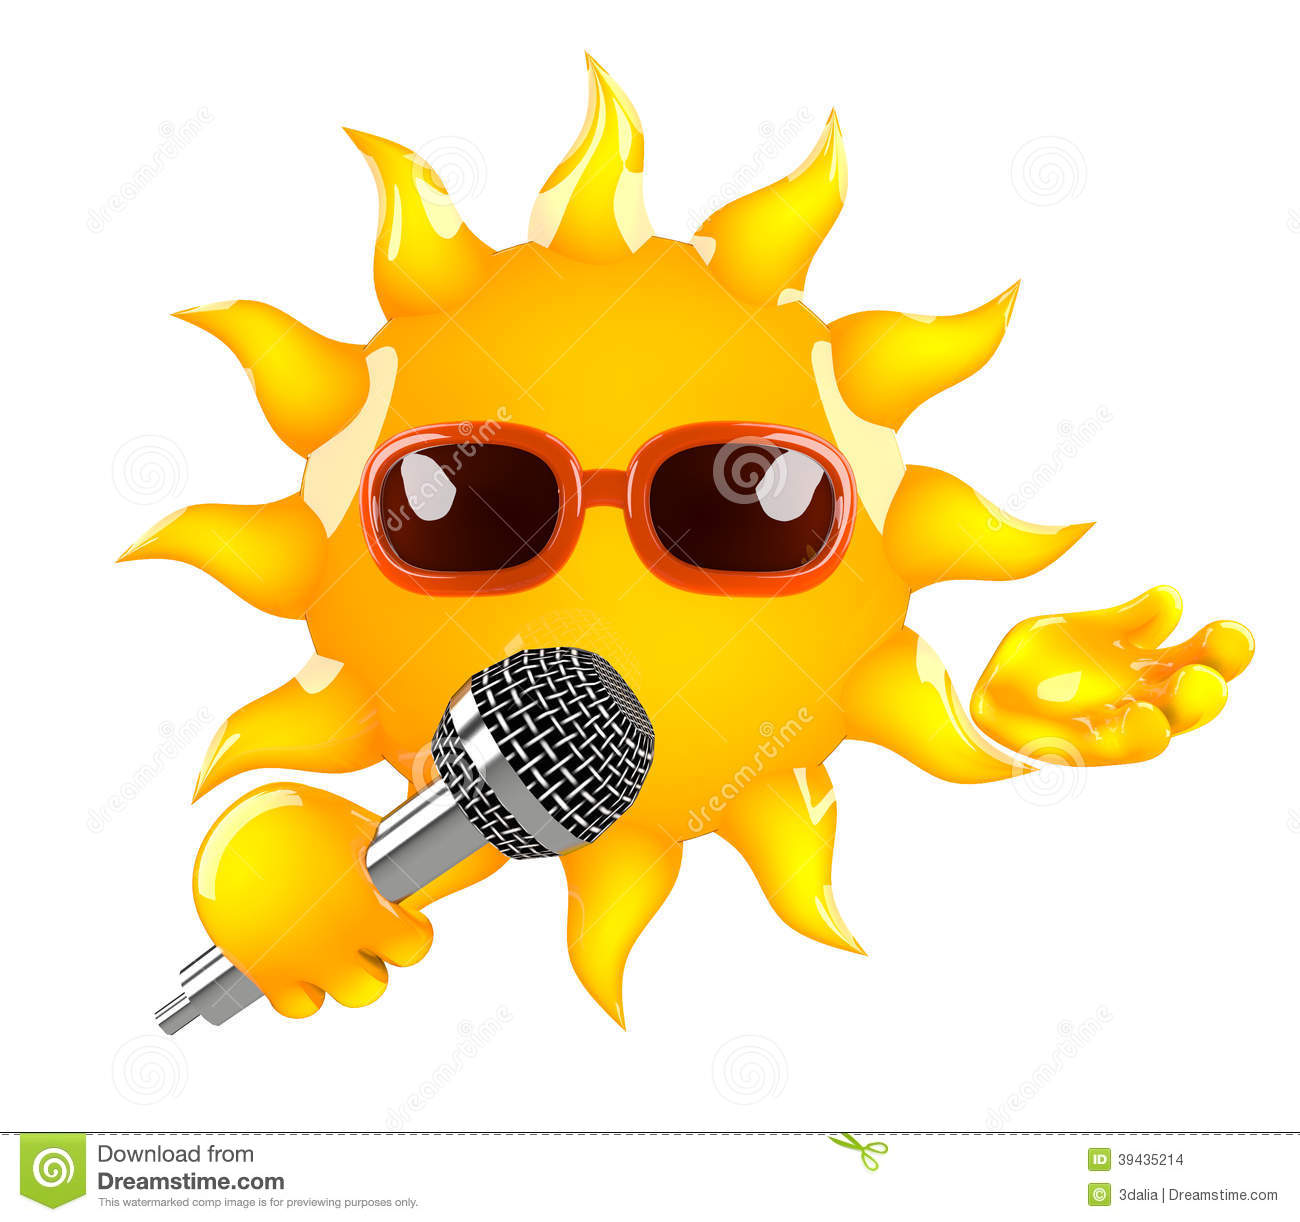 3d Sun sings stock illustration. Illustration of character - 39435214